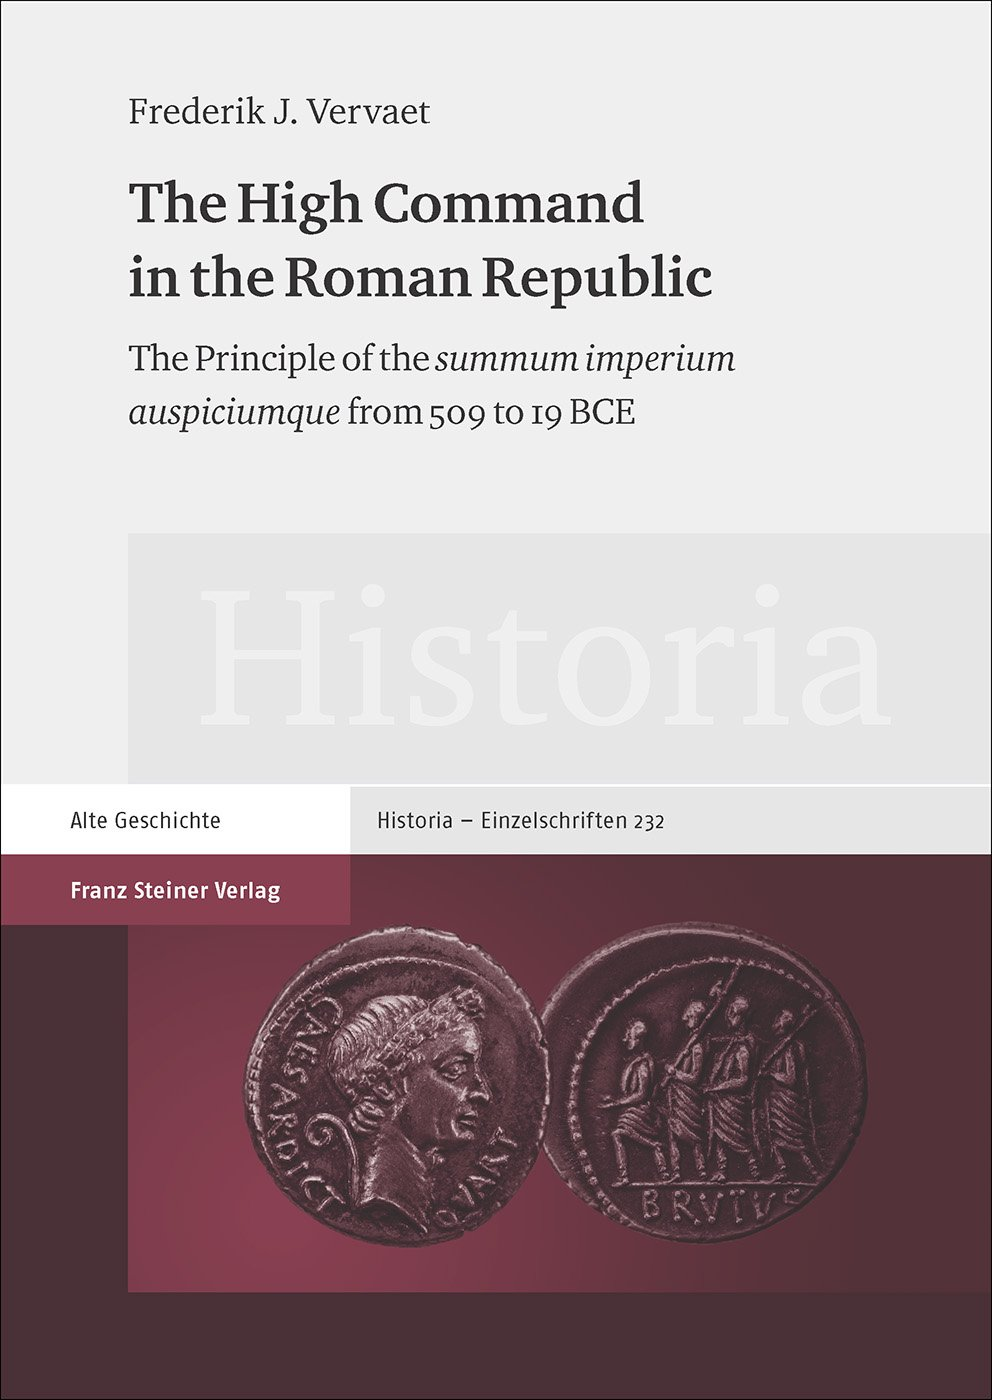 The High Command in the Roman Republic Vervaet, Frederik J. Historia - Einzels..